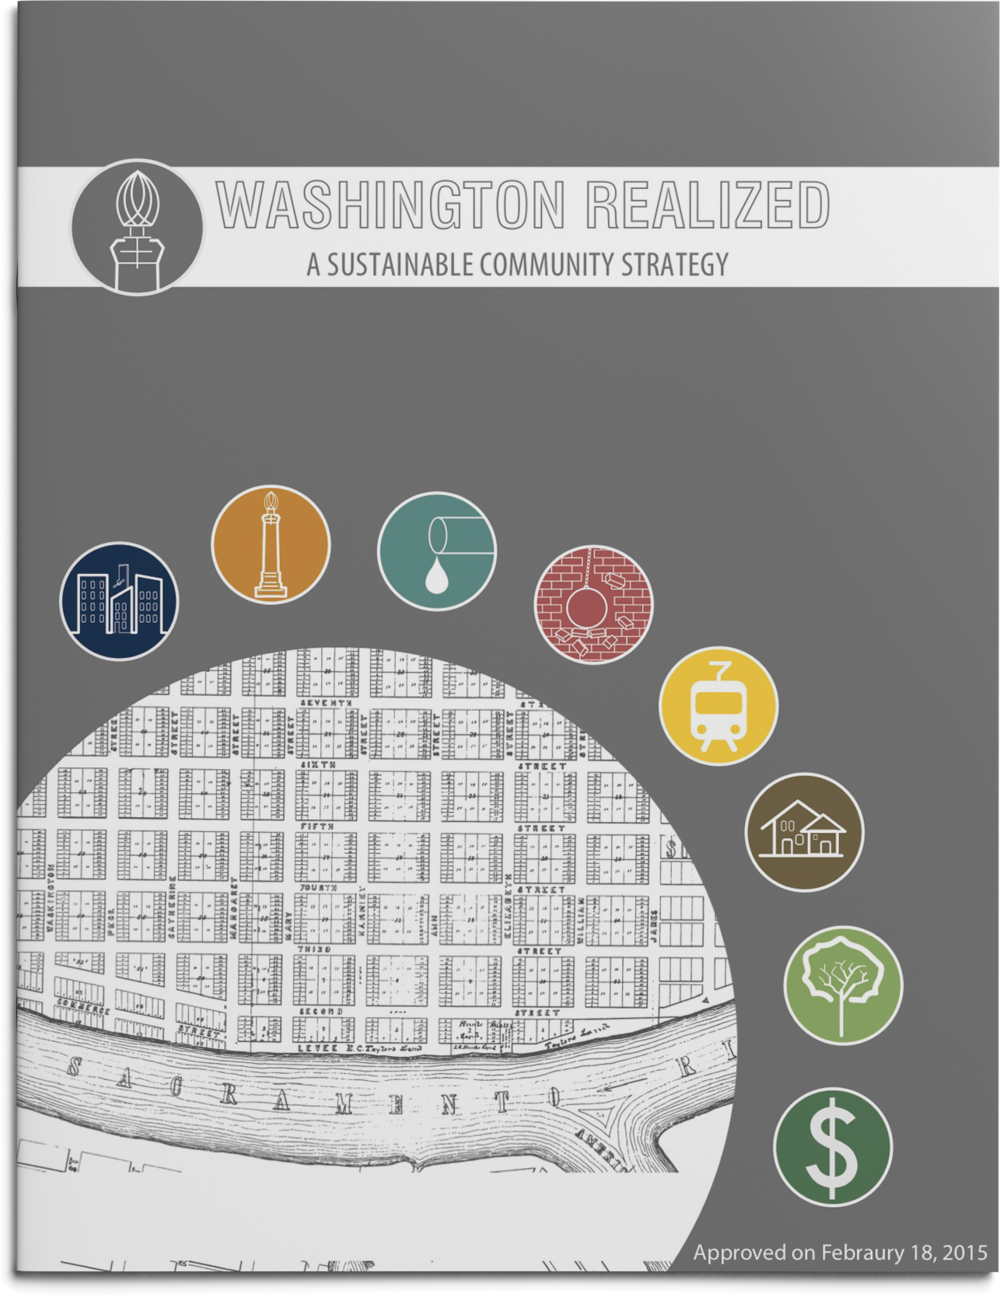 WashingtonRealizedComplete_cover-2.png